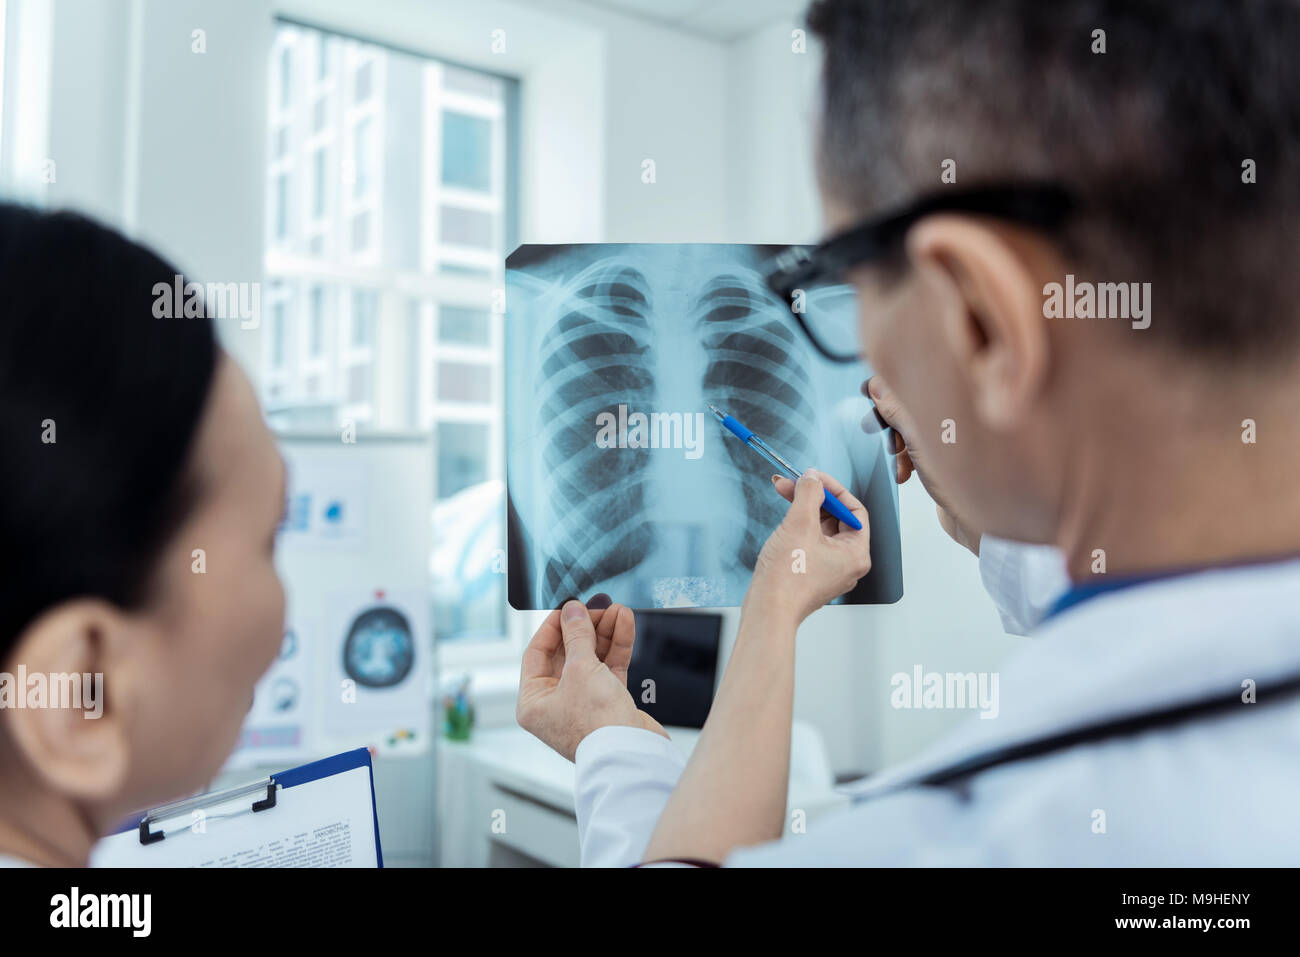 Experienced doctors detecting problems on radio scan - Stock Image